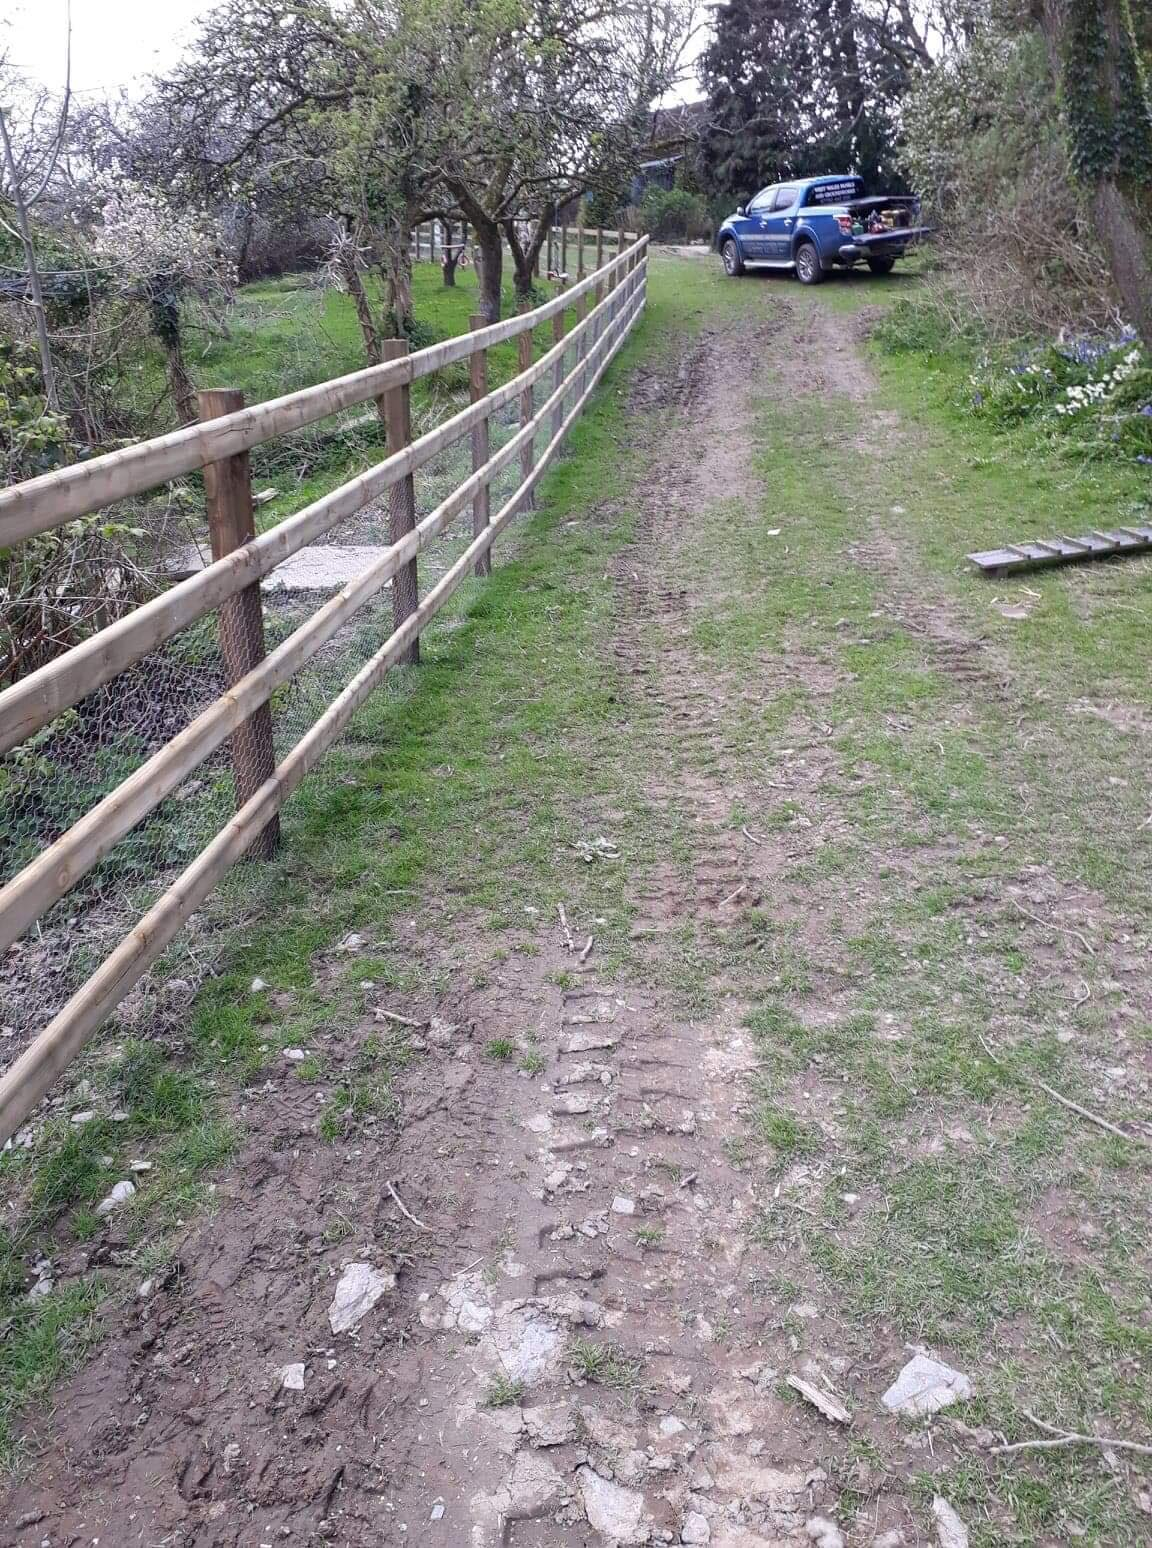 Post and rail wooden fencing